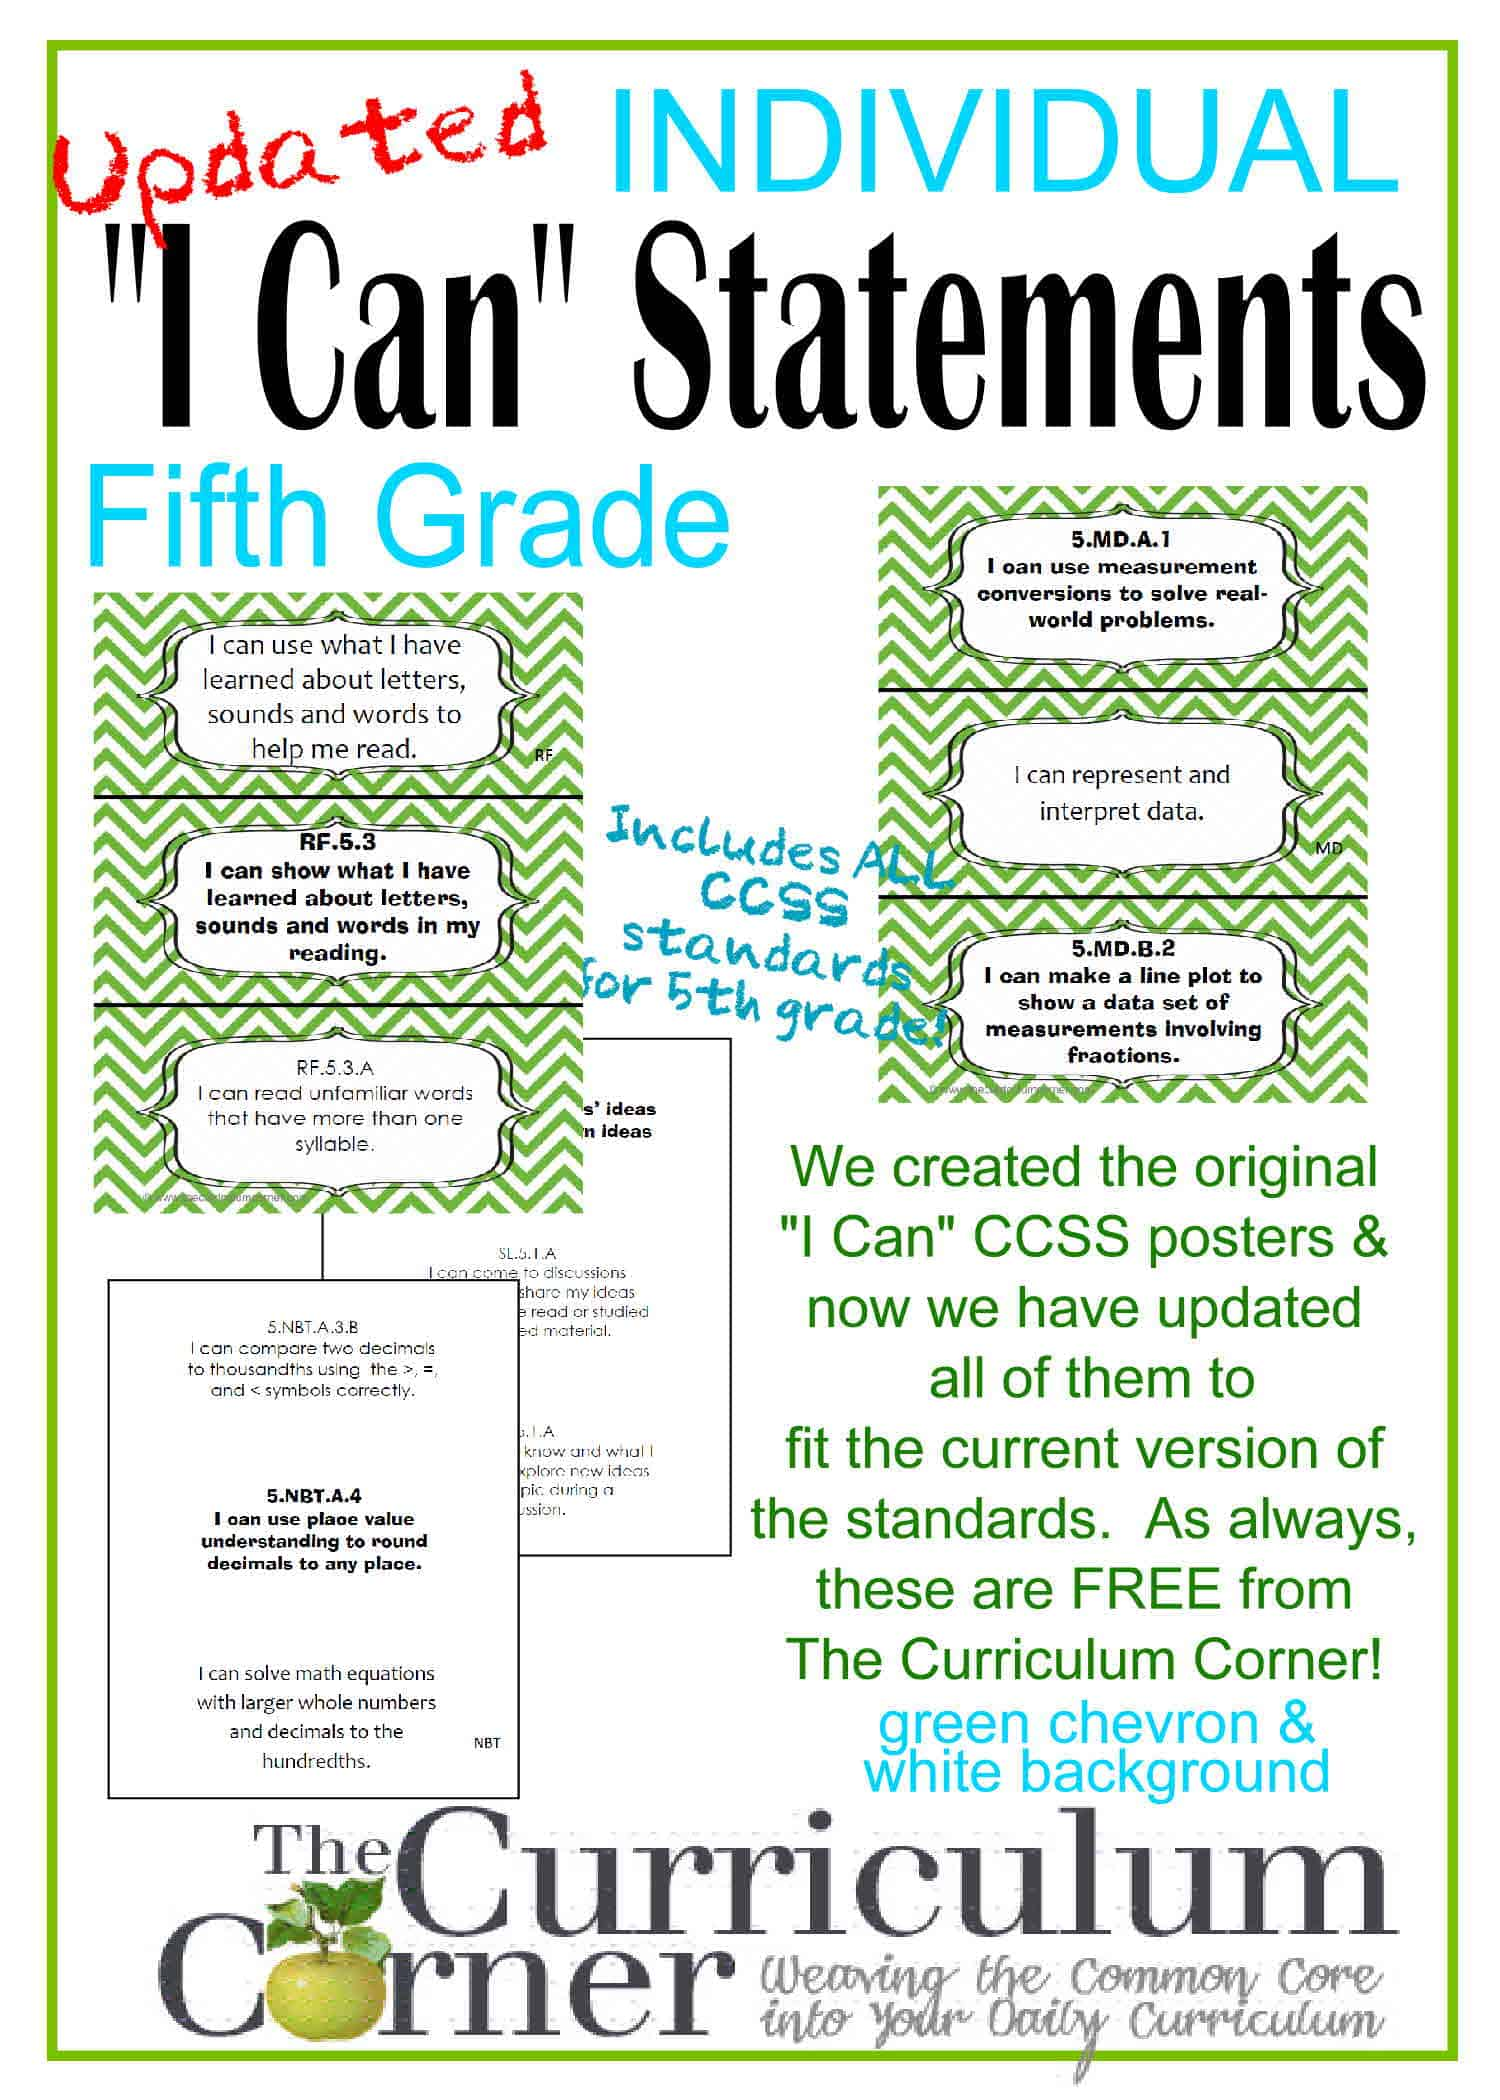 Individual I Can Statements for CCSS 5th Grade in Green Chevron